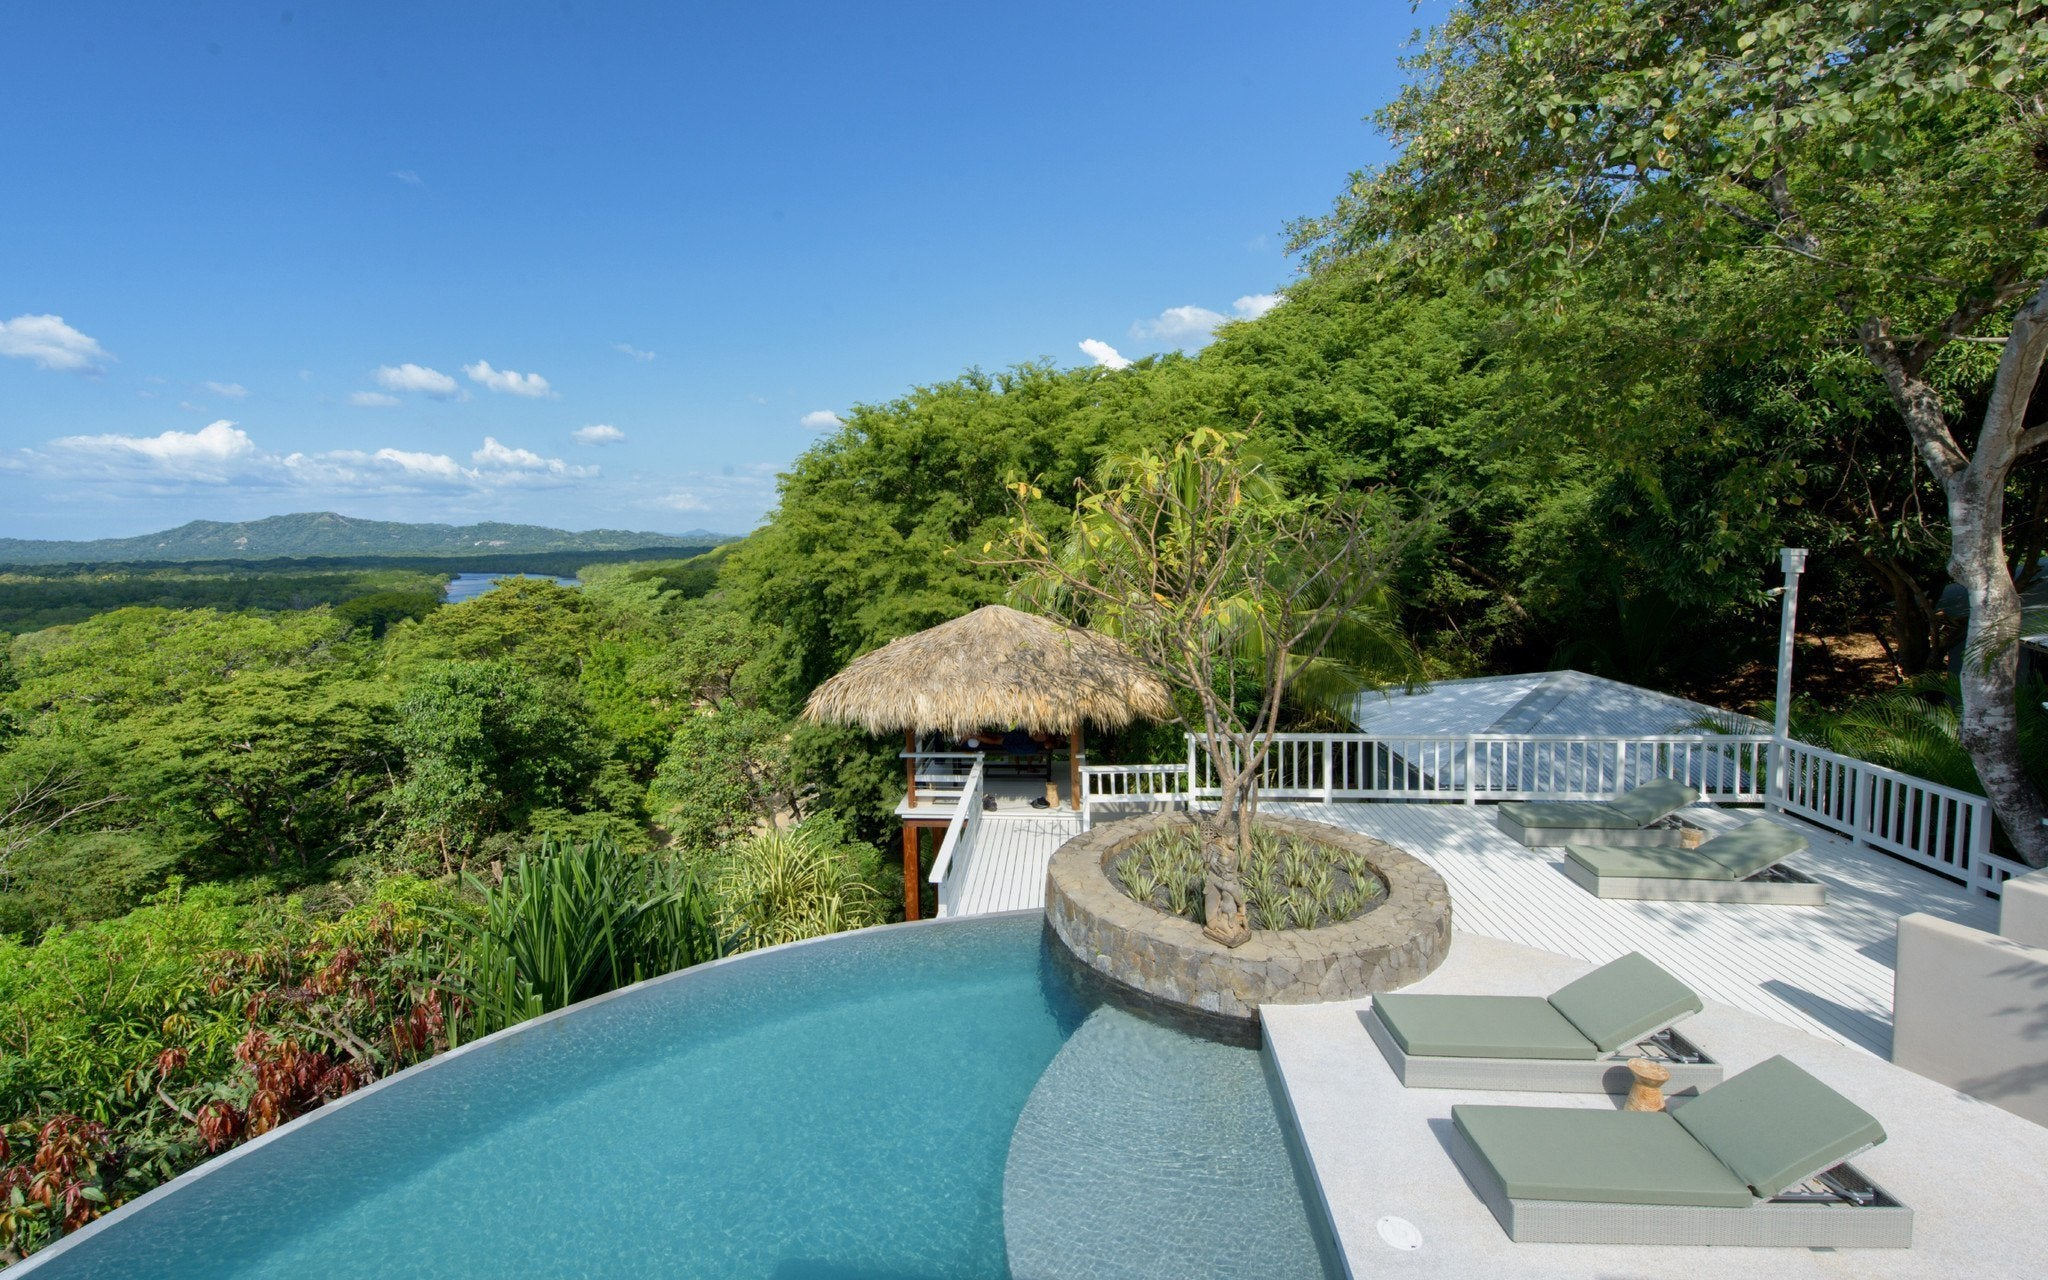 Sunset House, Tamarindo, Costa Rica - PLAYGROUNDS Costa Rica Yacht Rental, Luxury Ocean Adventures